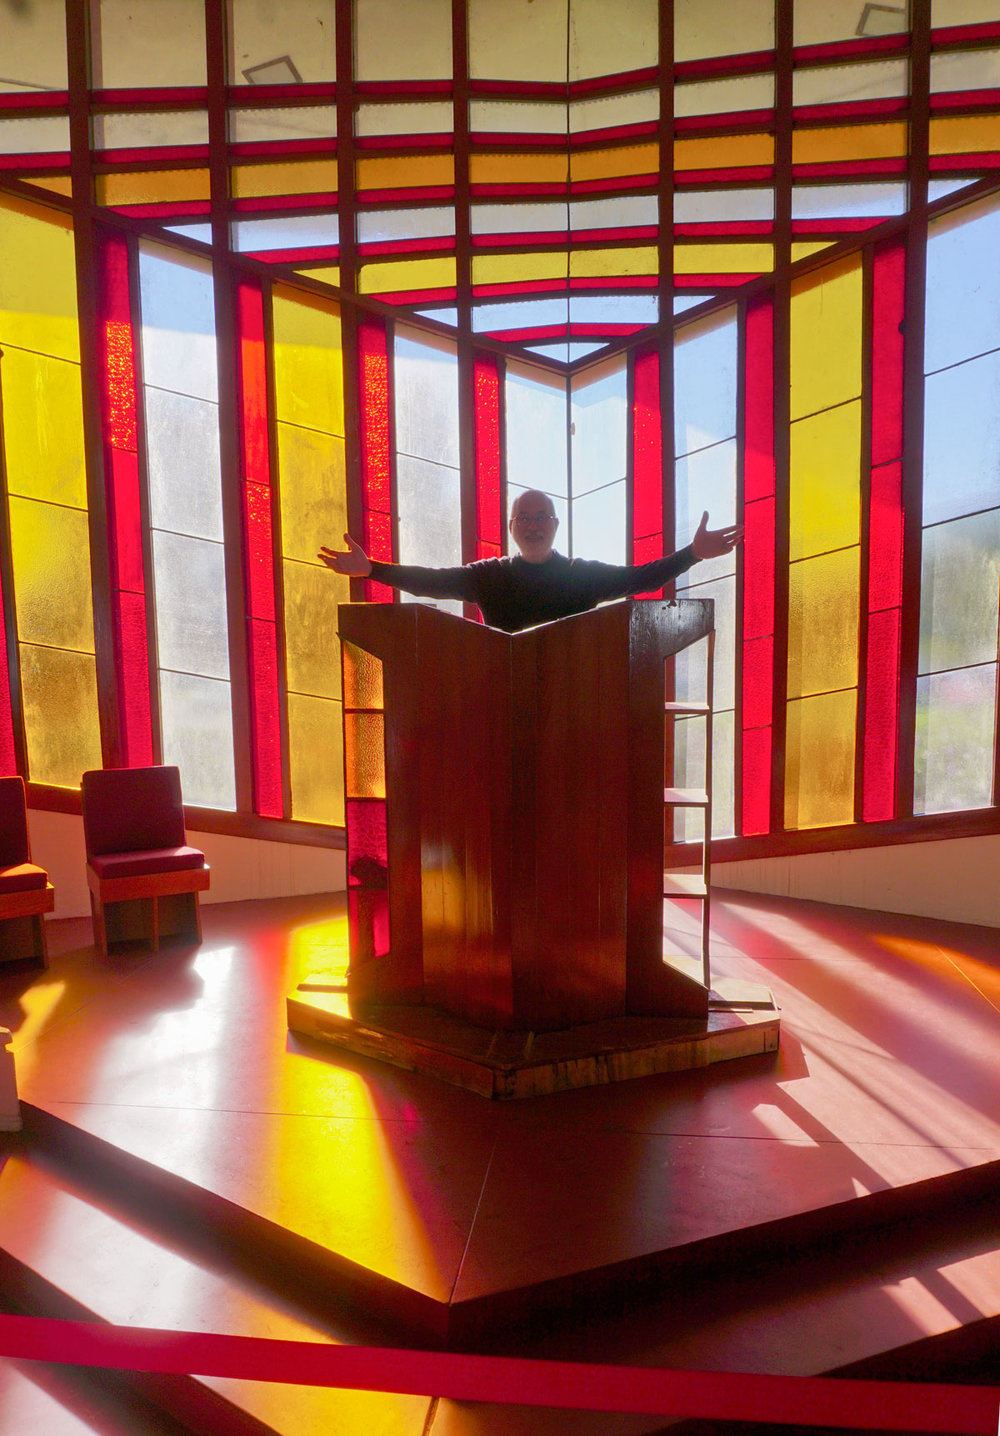 © 2019 Louise Levergneux. Michael remembering his roots at Frank Lloyd Wright's William H Danforth Chapel at the Florida Southern College in Lakeland. /  Michael se souvient de ses racines à la chapelle William H Danforth de Frank Lloyd Wright au Florida Southern College à Lakeland.